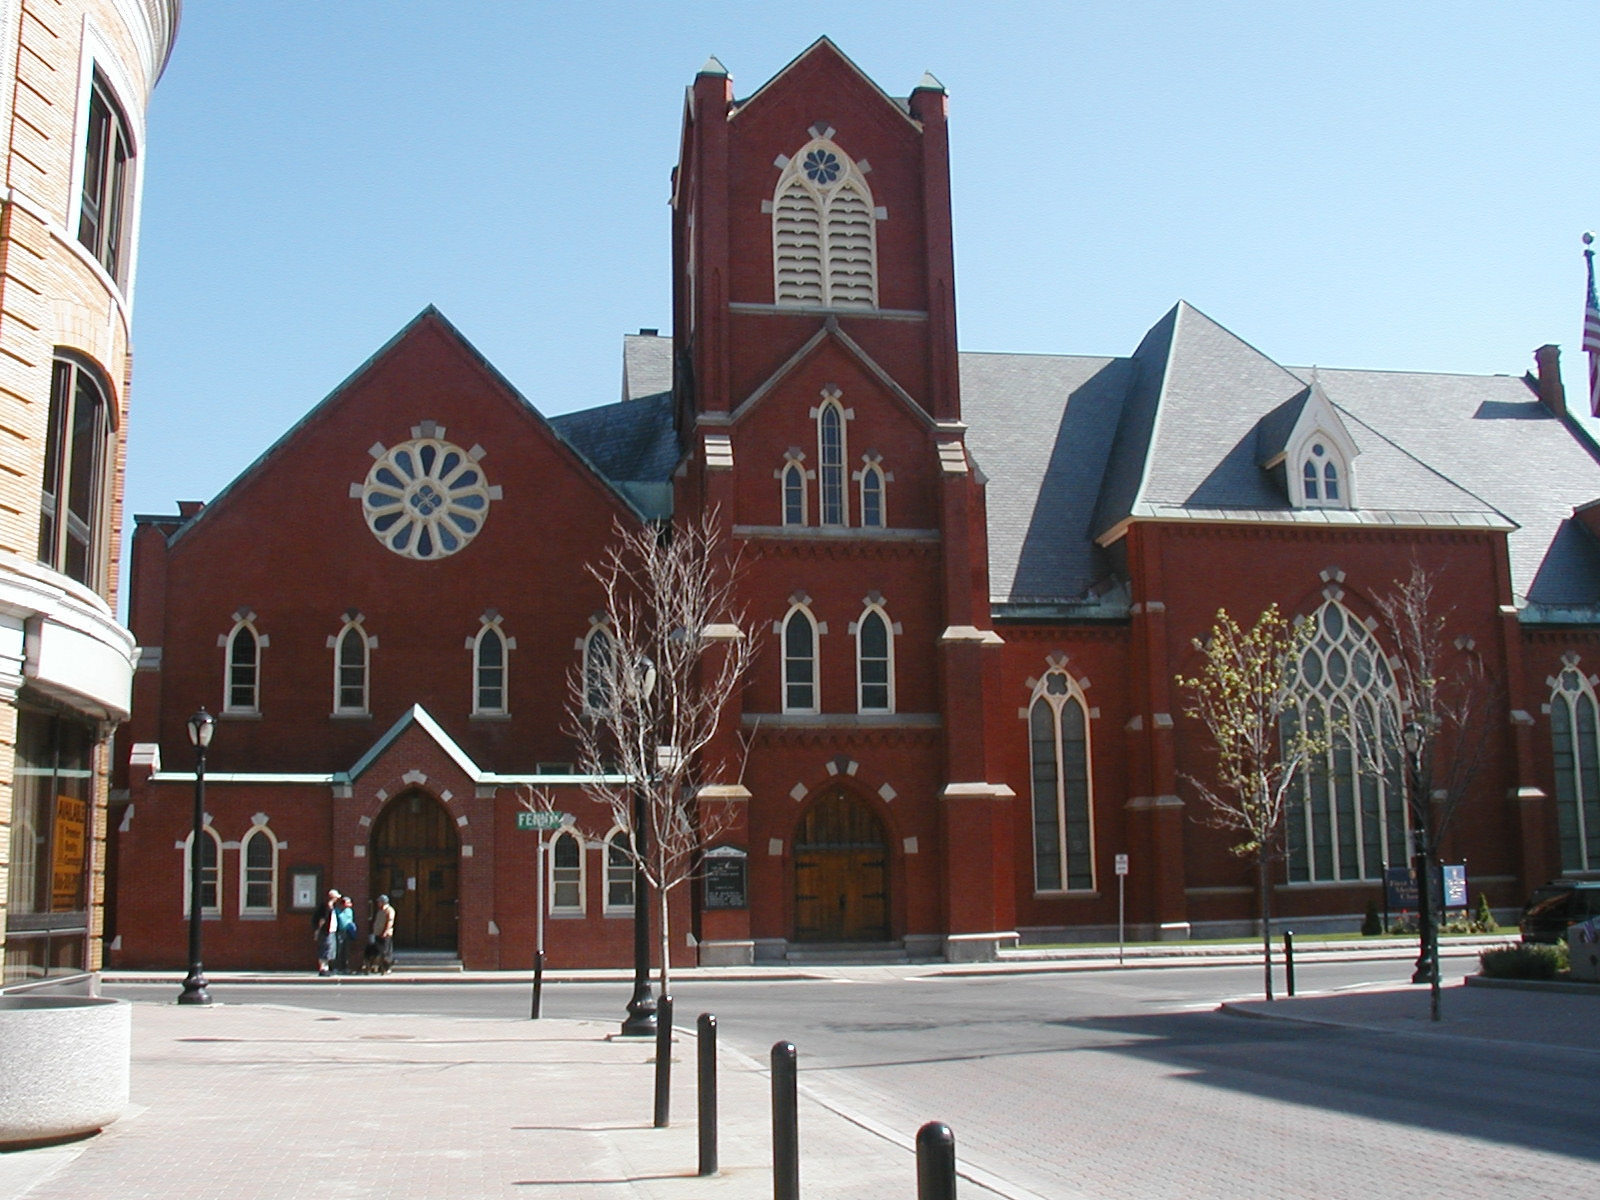 First United Methodist Church of Pittsfield